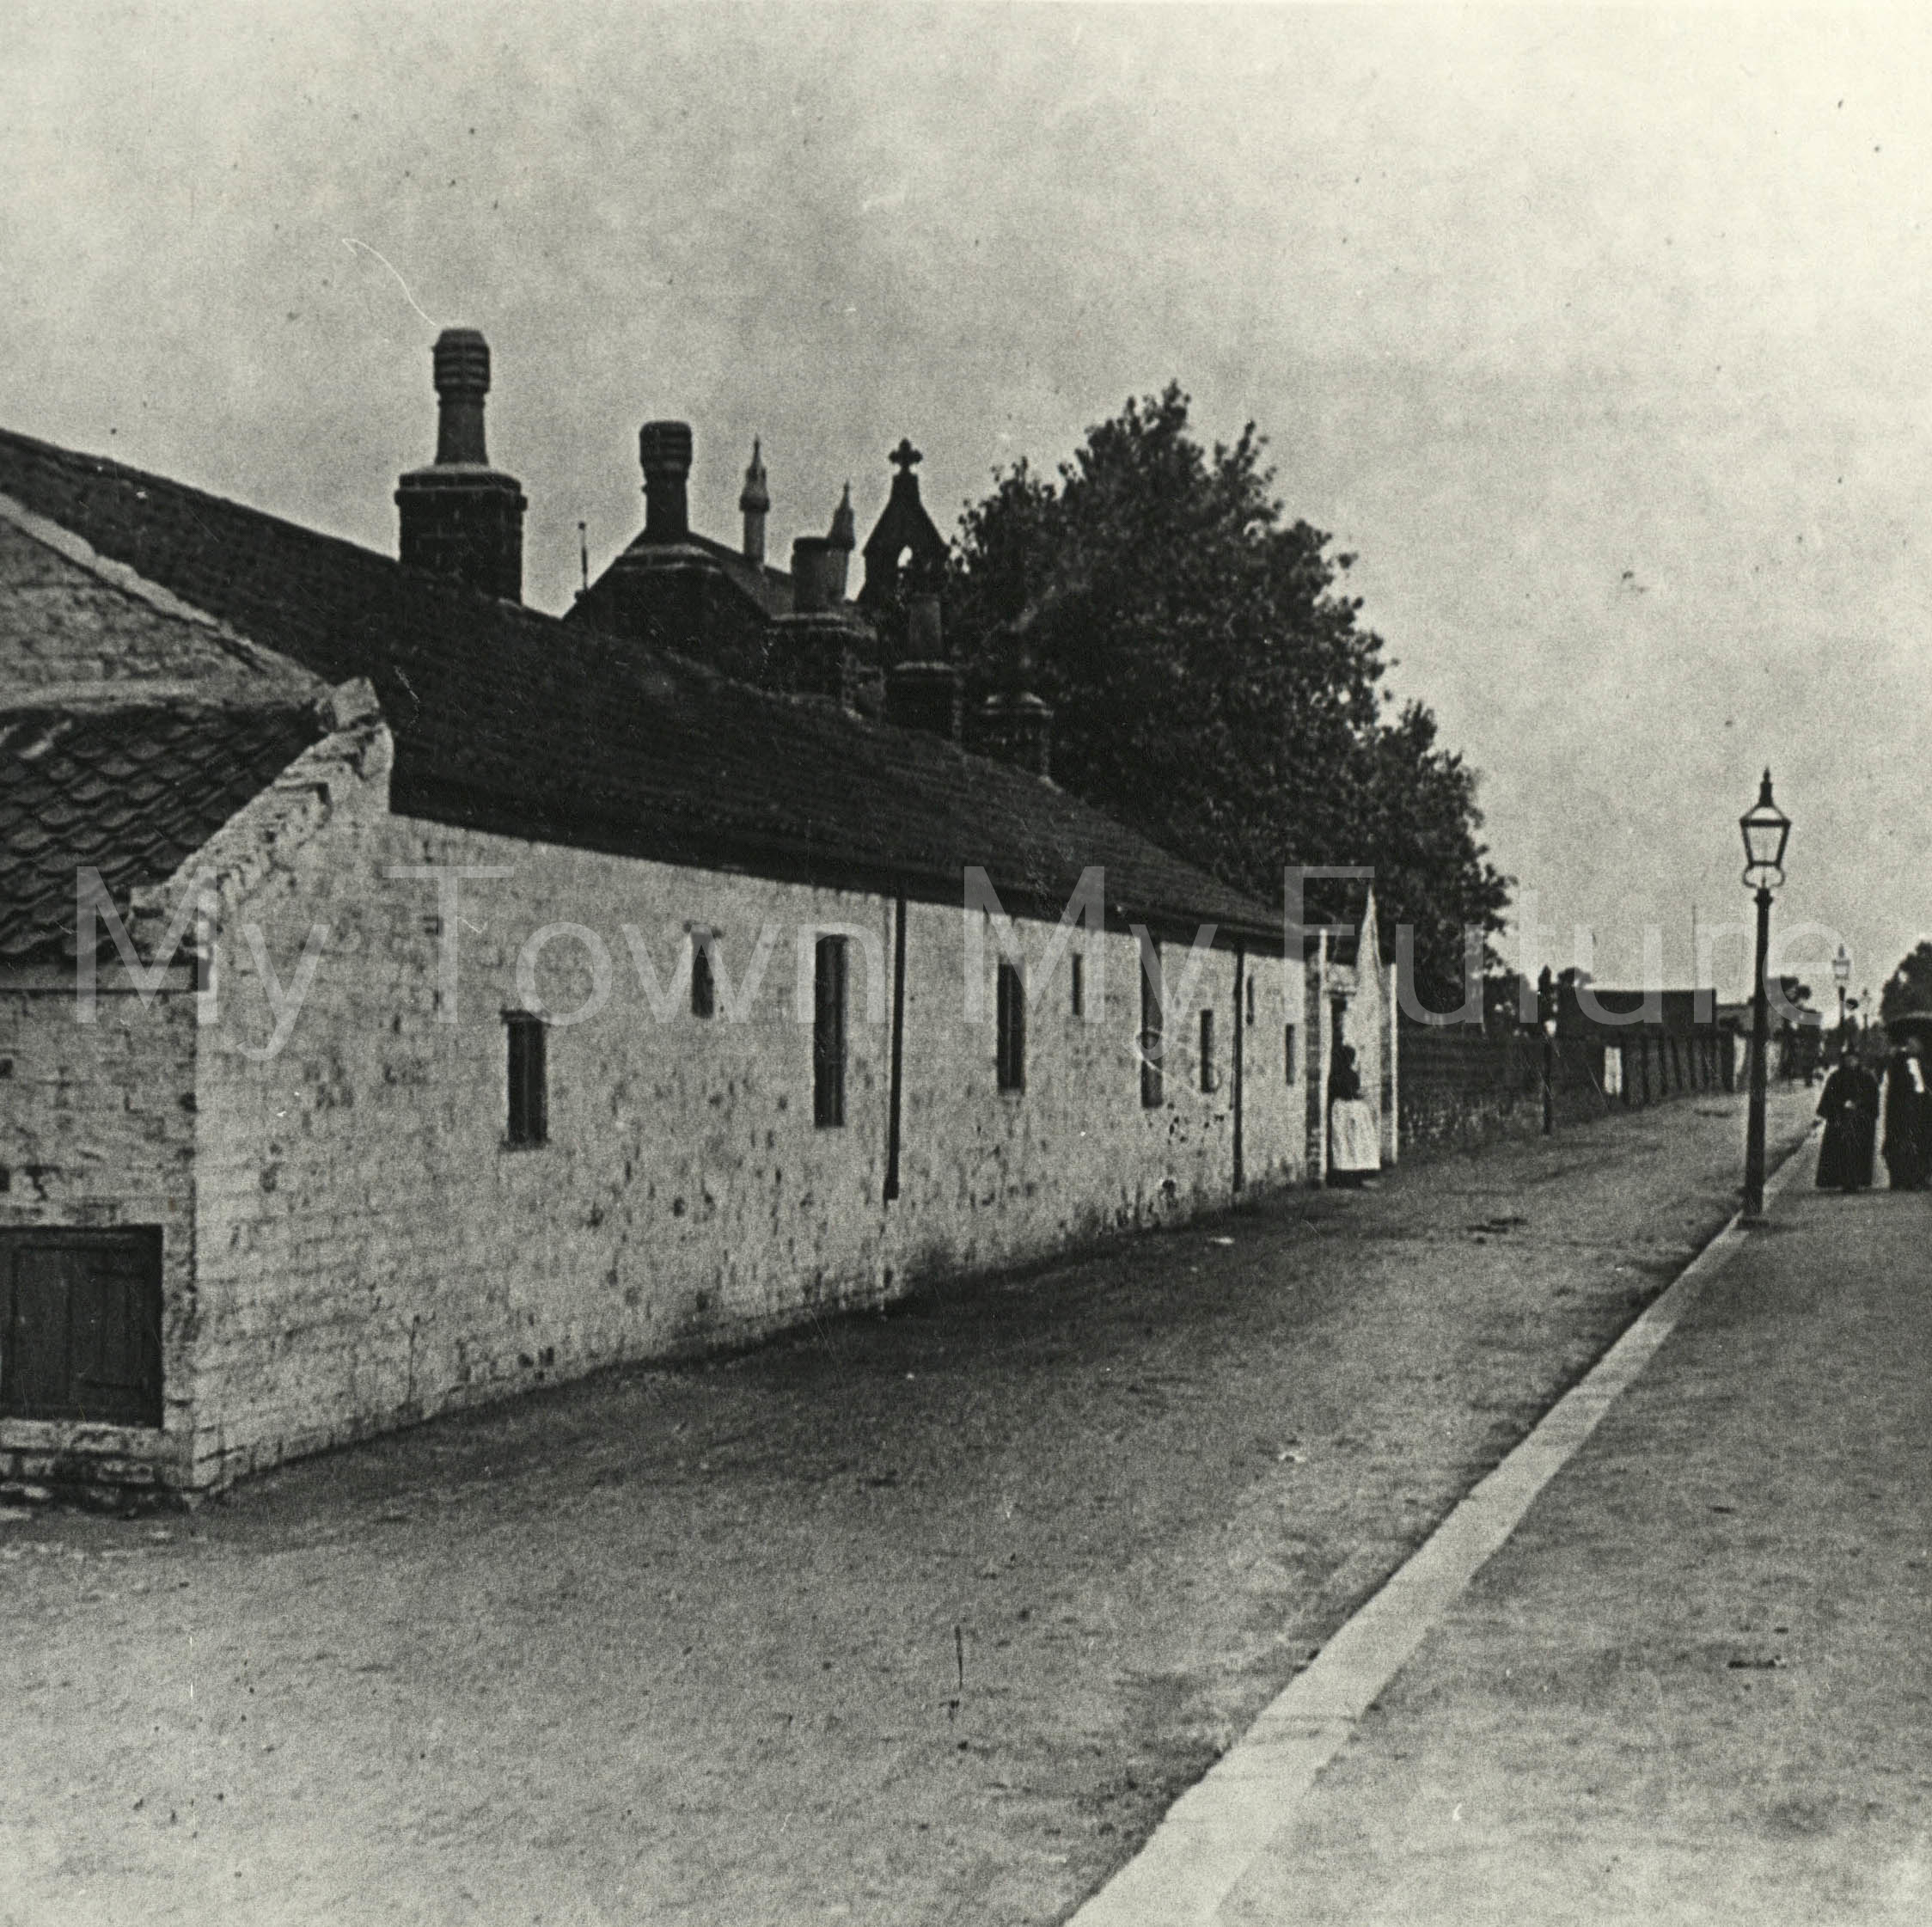 White Cottages, St Barnabas Road, Linthorpe, Middlesbrough. c.1900.